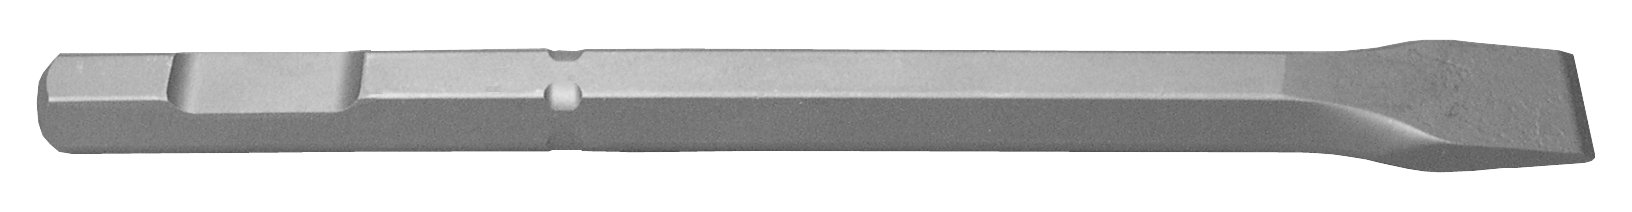 Champion Chisel, 3/4-Inch Hex Demo Shank, 20-Inch Long, Narrow, Flat Chisel